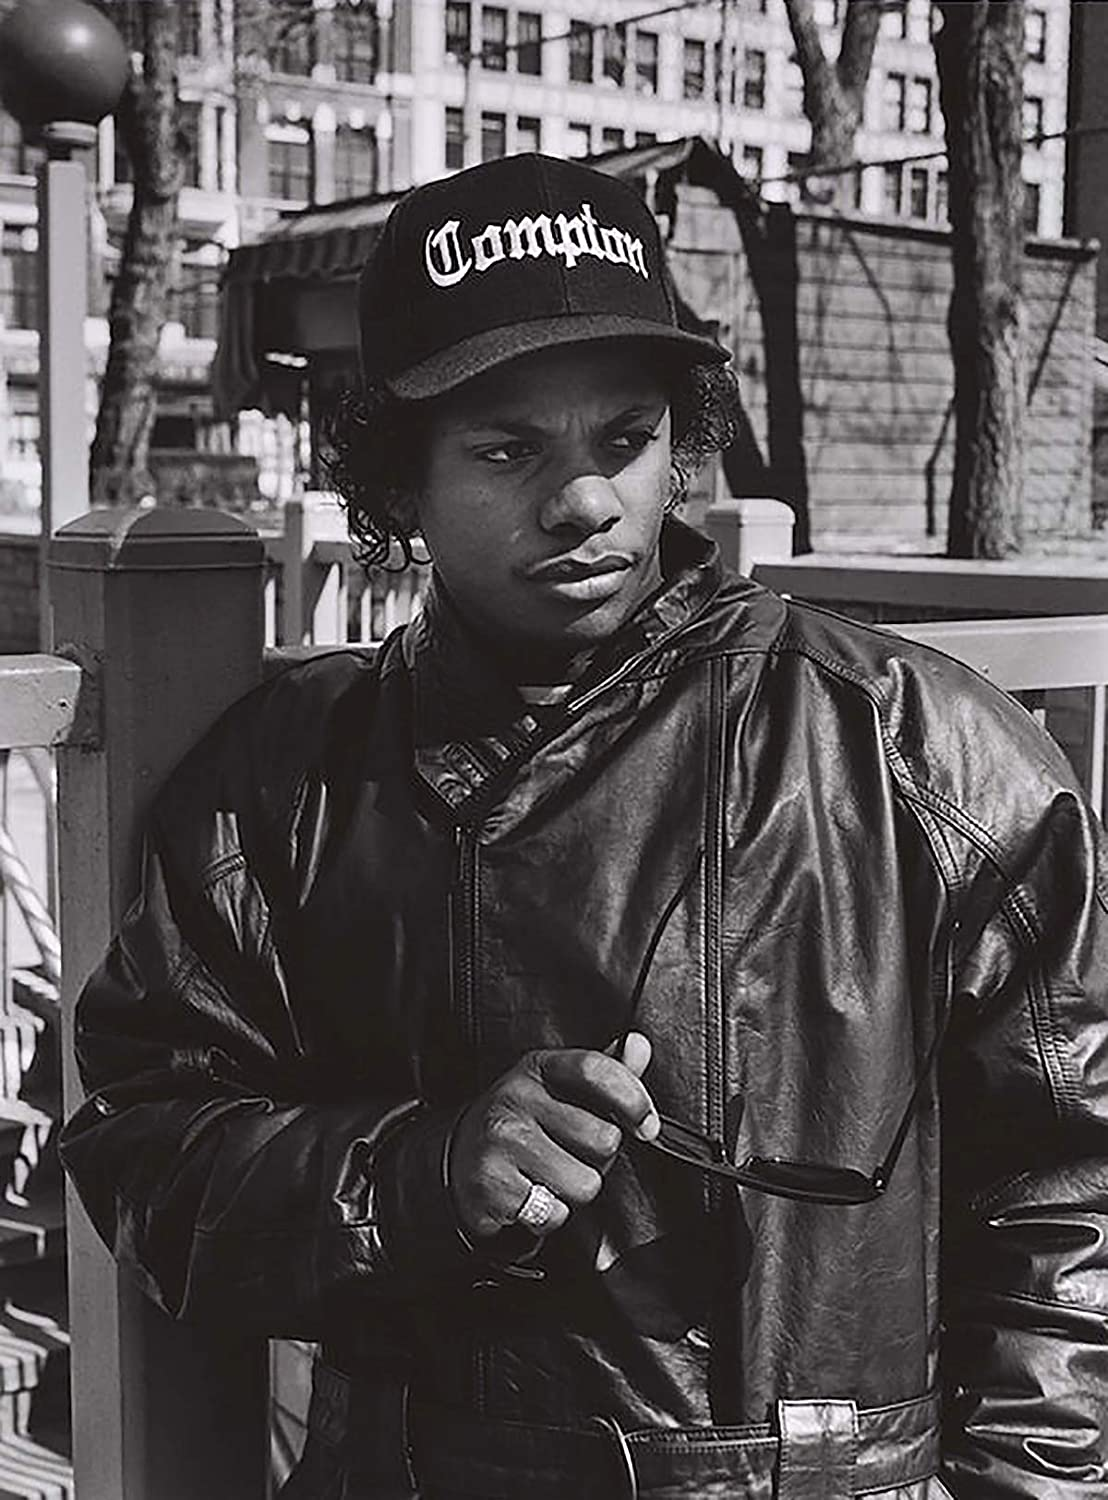 777 Tri-Seven Entertainment Eazy-E Poster Large Wall Art Print (24x36)